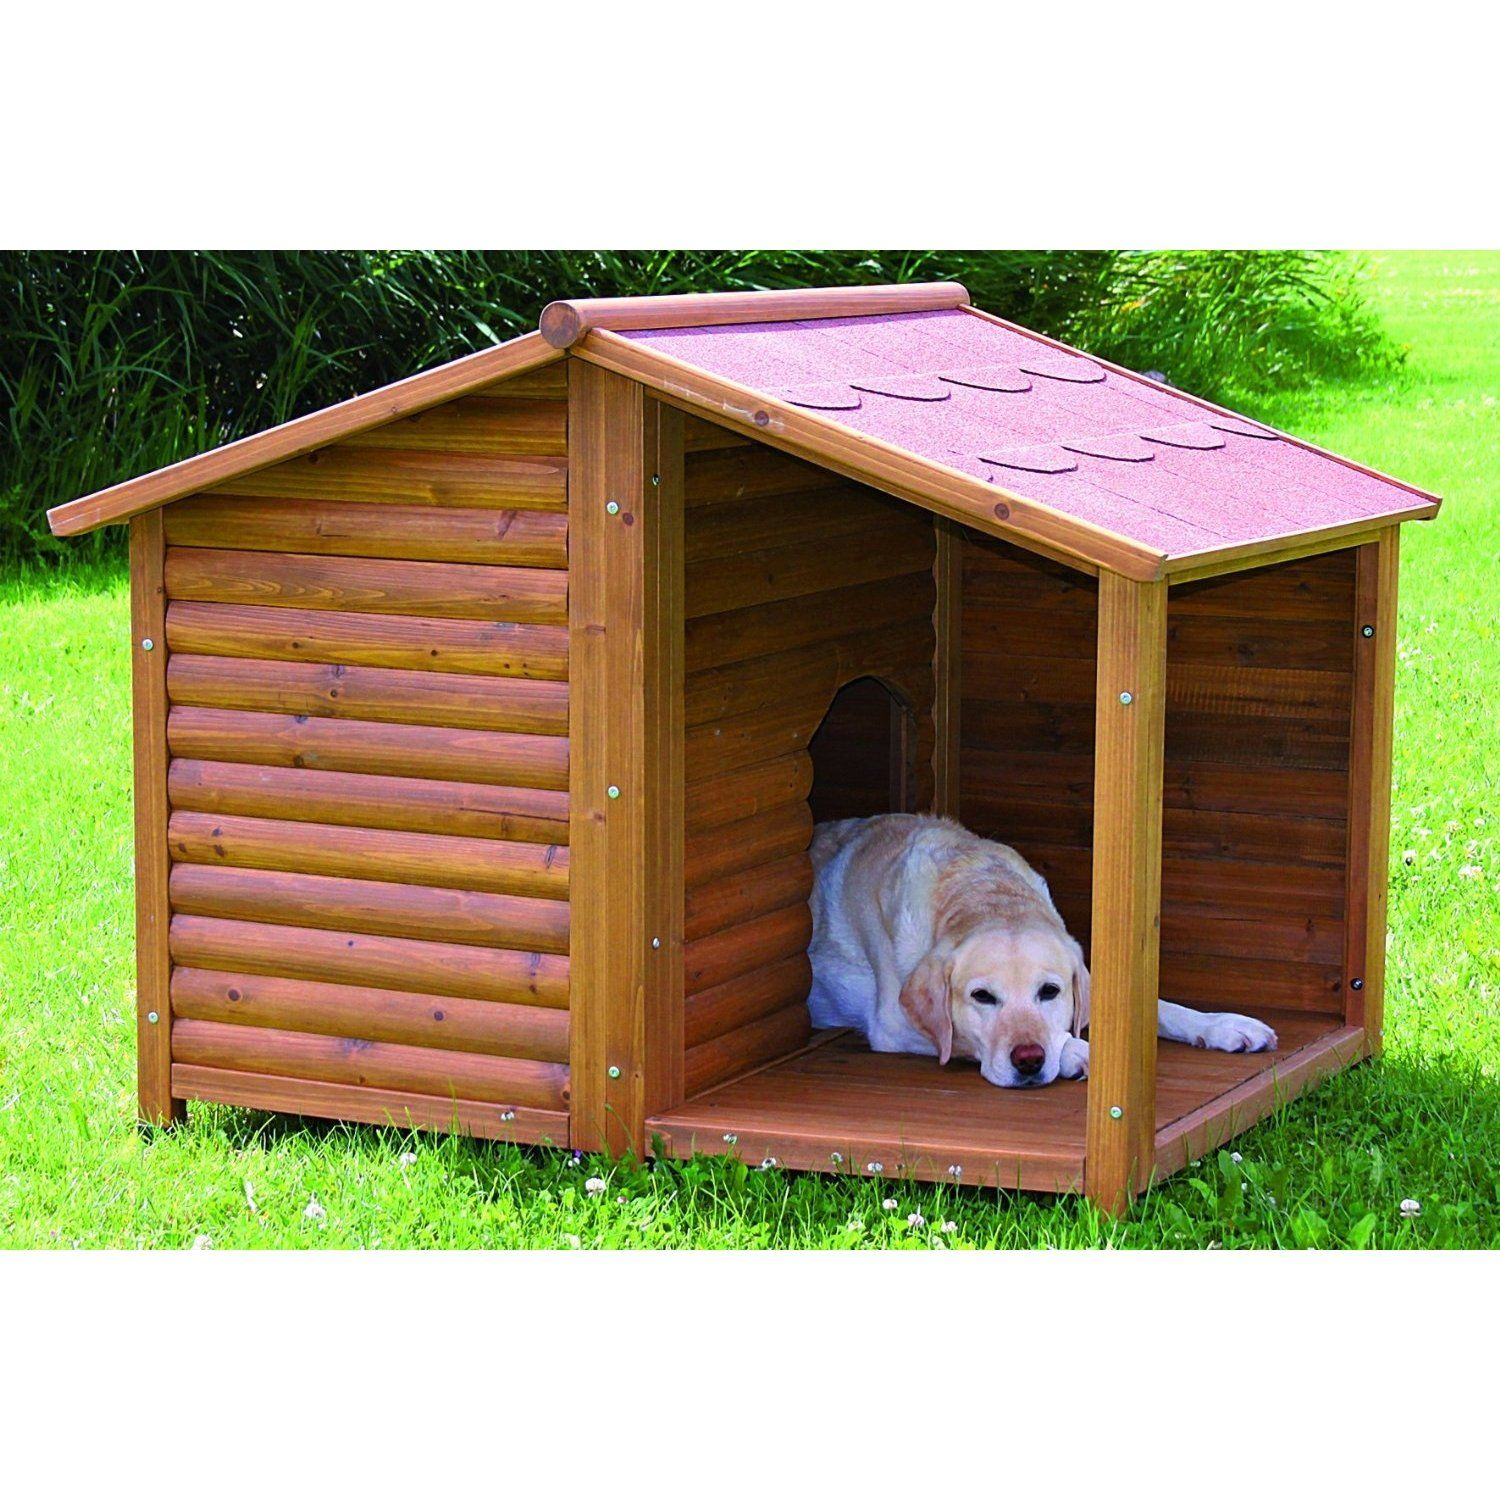 Natura Rustic Dog Houses Rustic Dog Houses Large Dog House